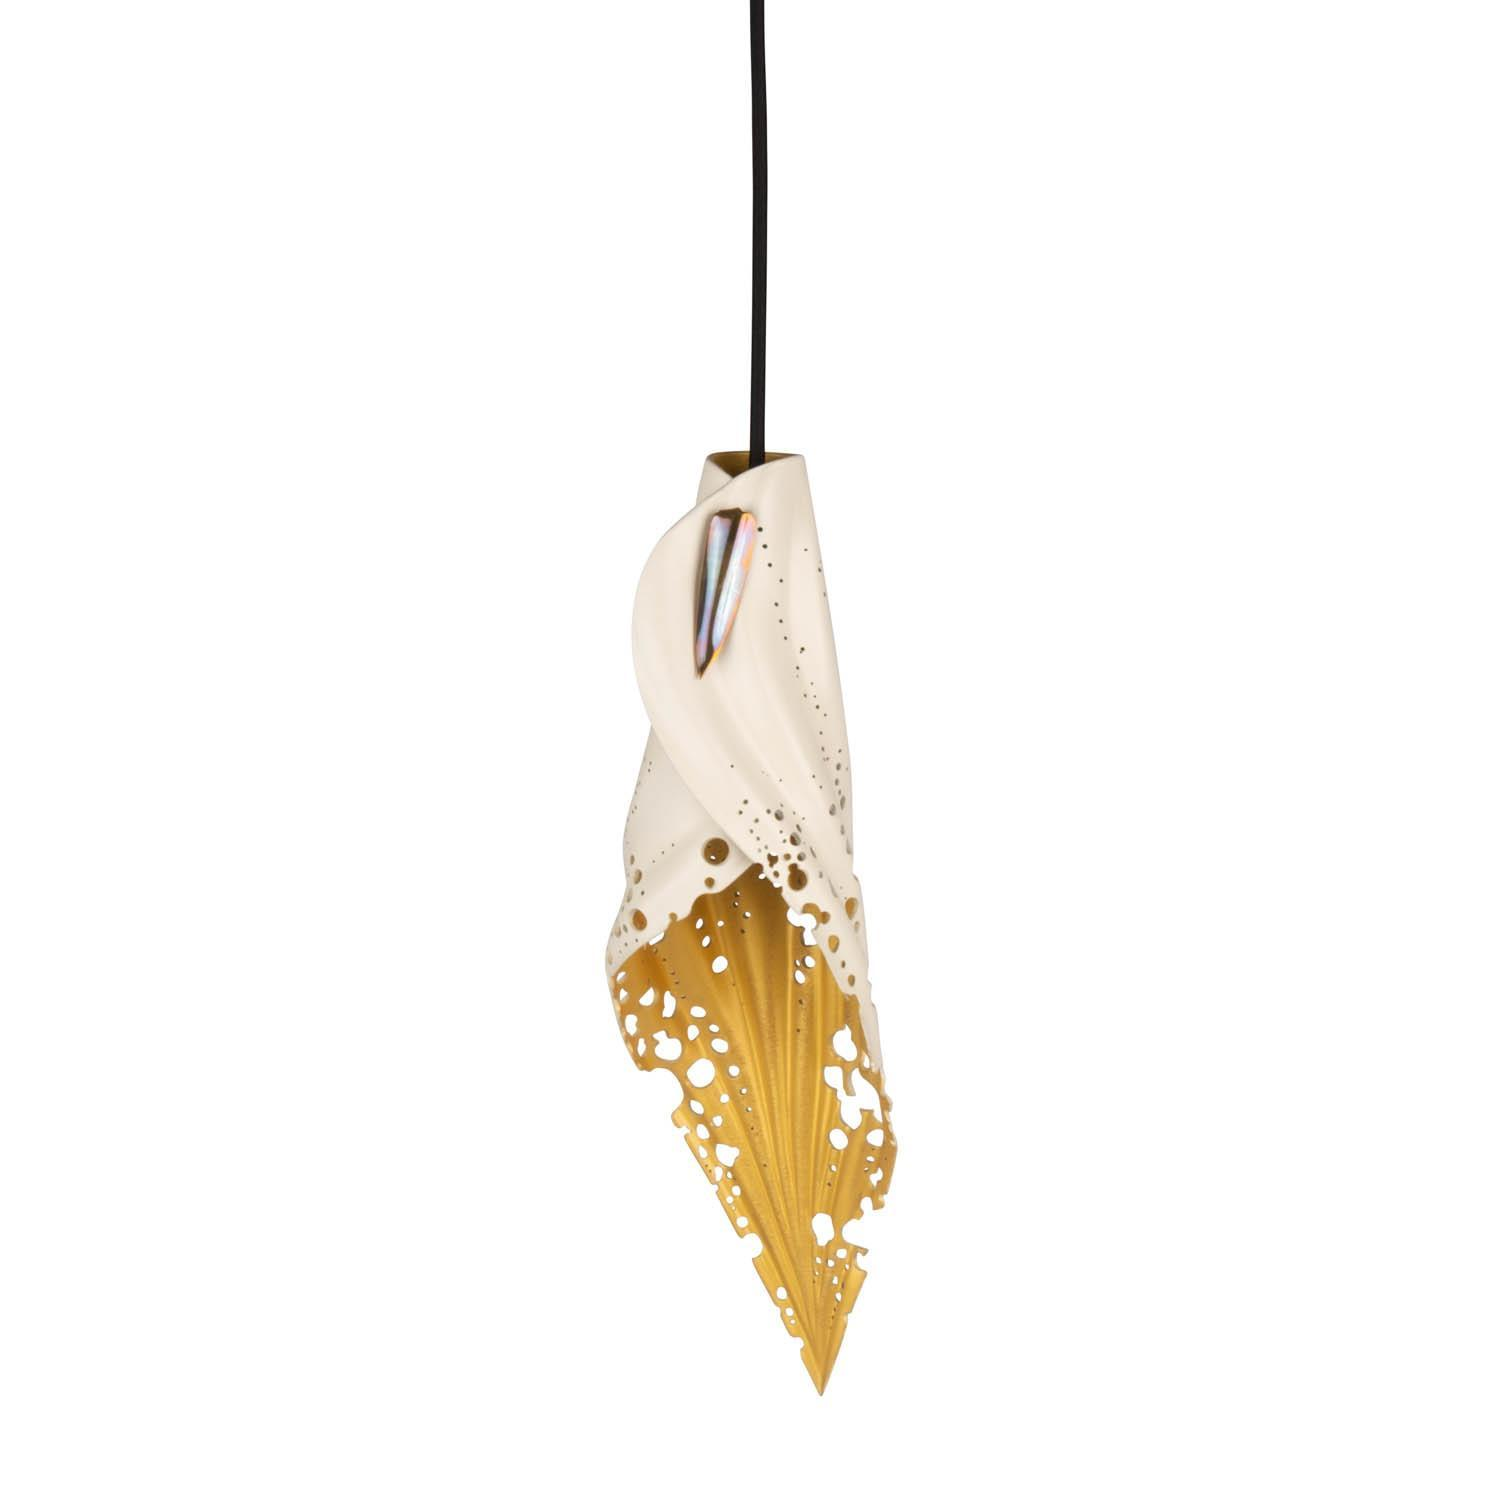 Pierced Blade Light - Small - Bone/Gold Leather